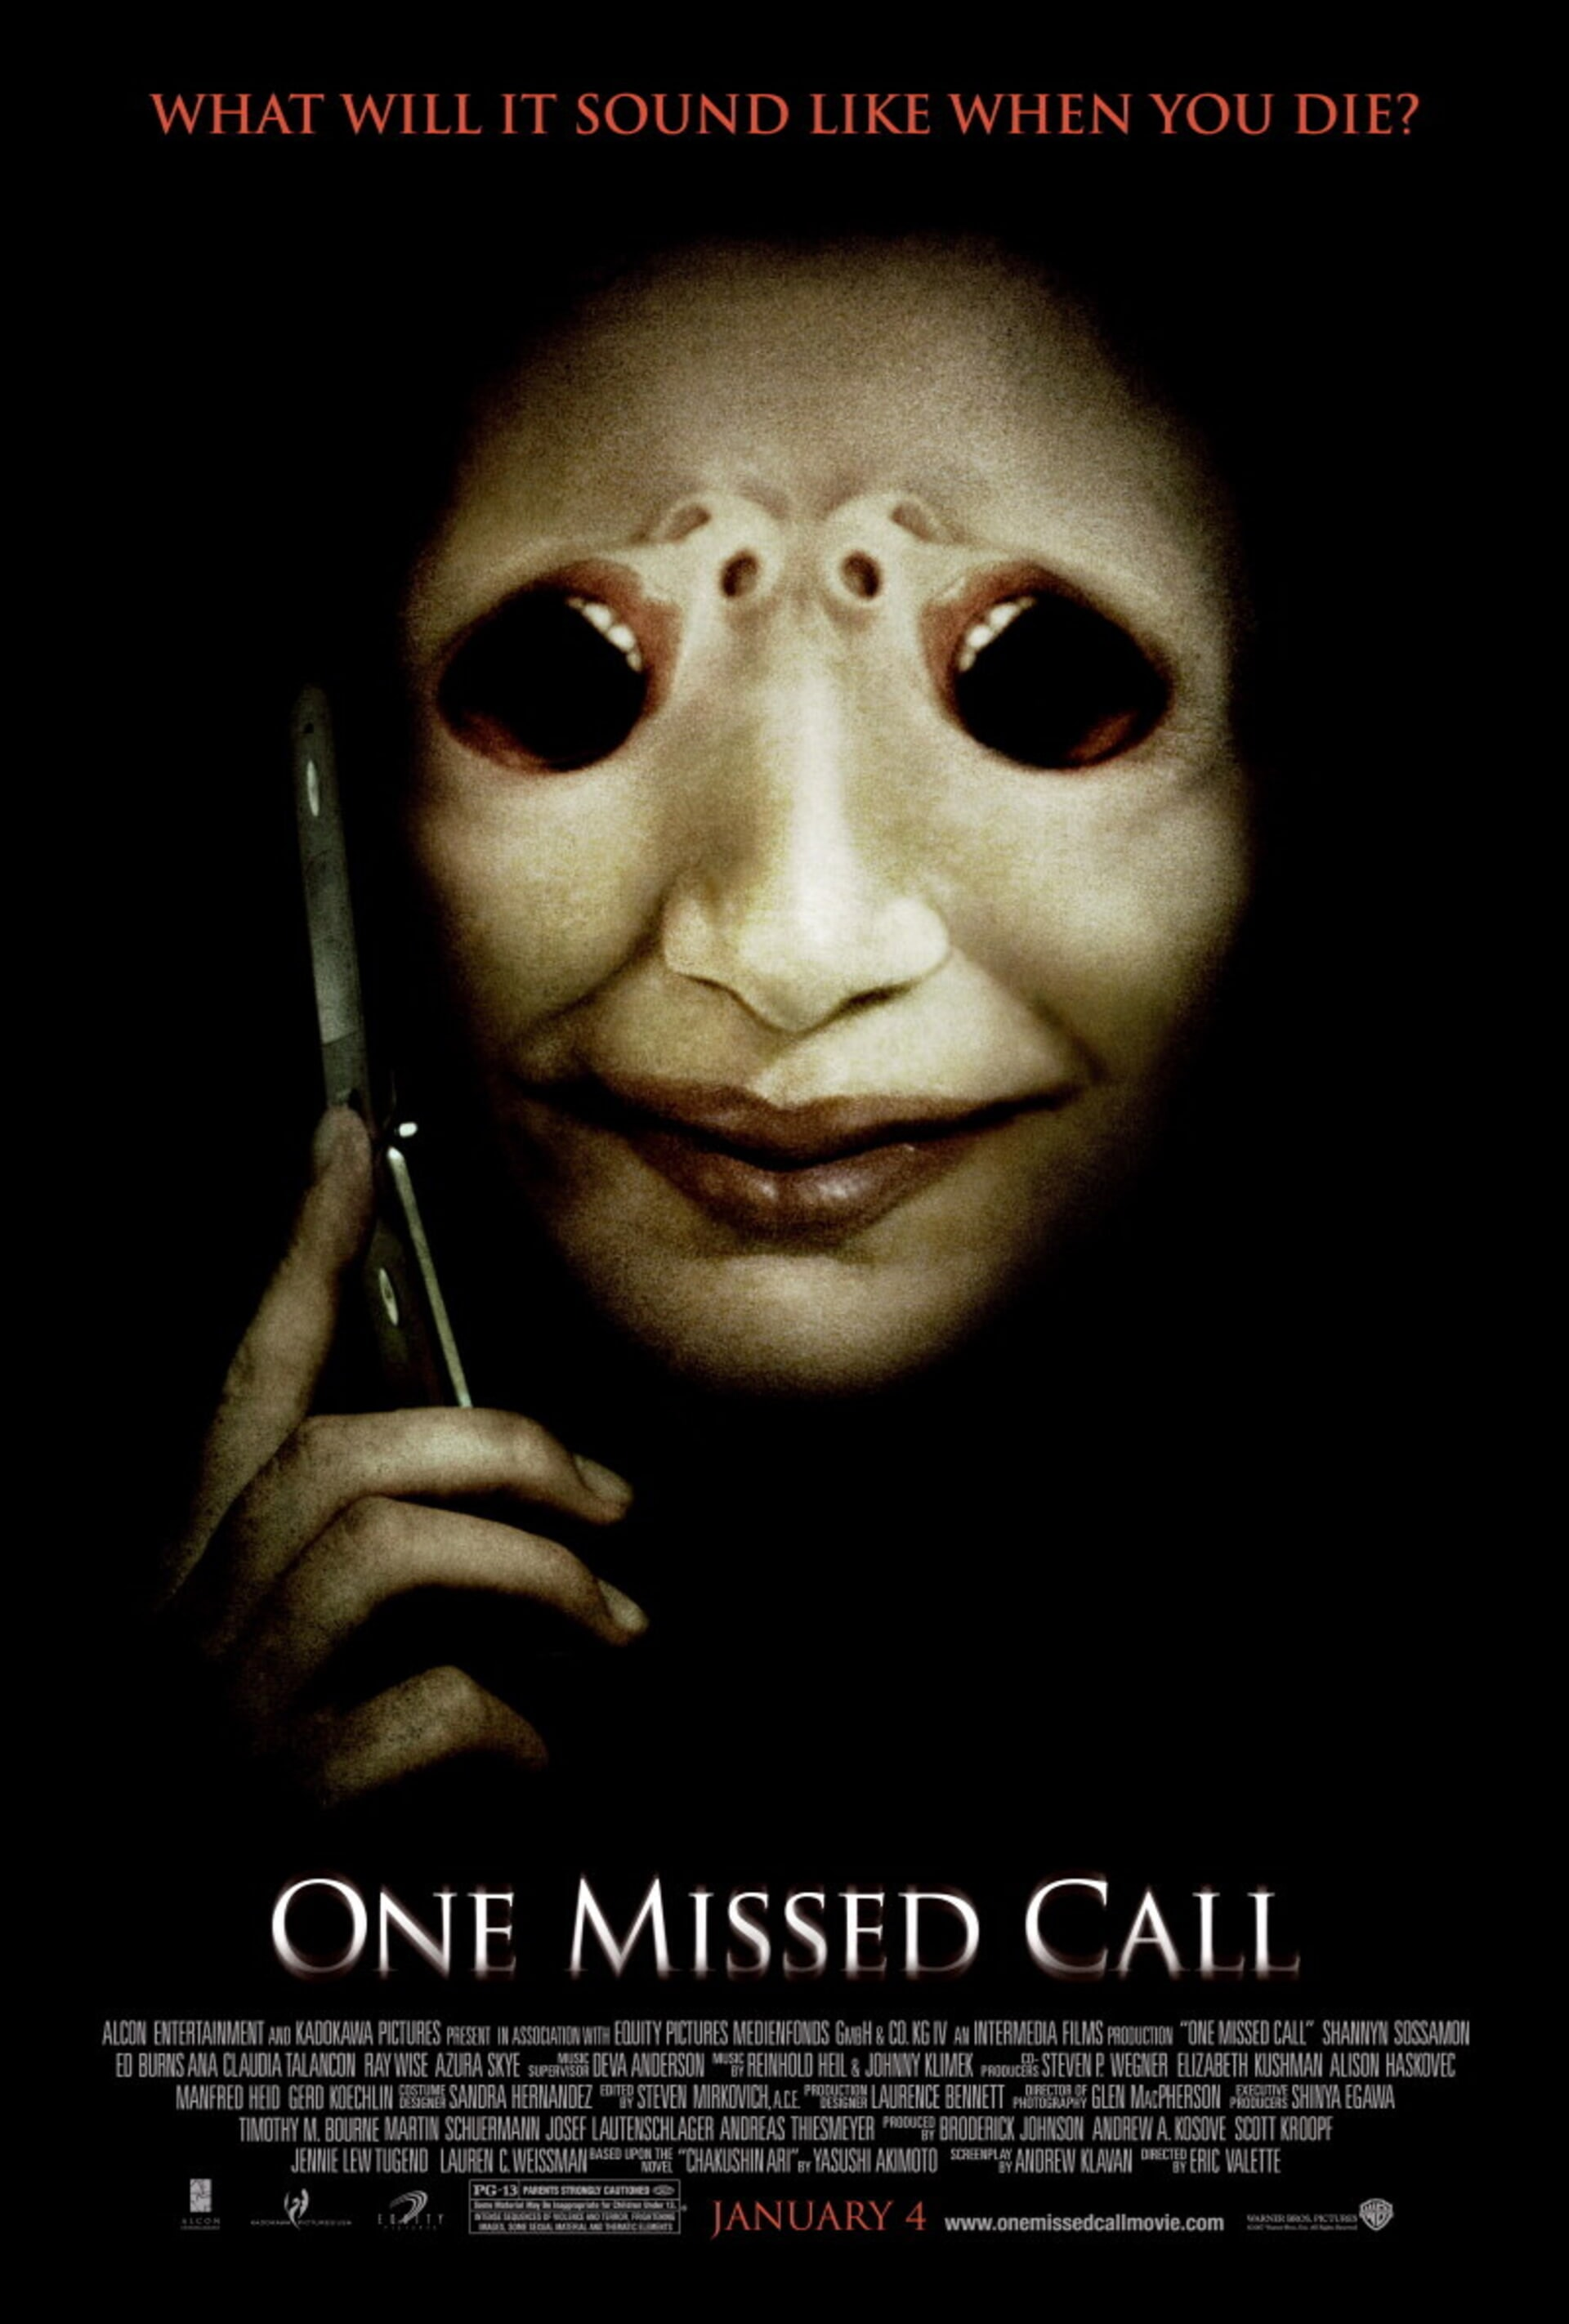 One Missed Call - Poster 1